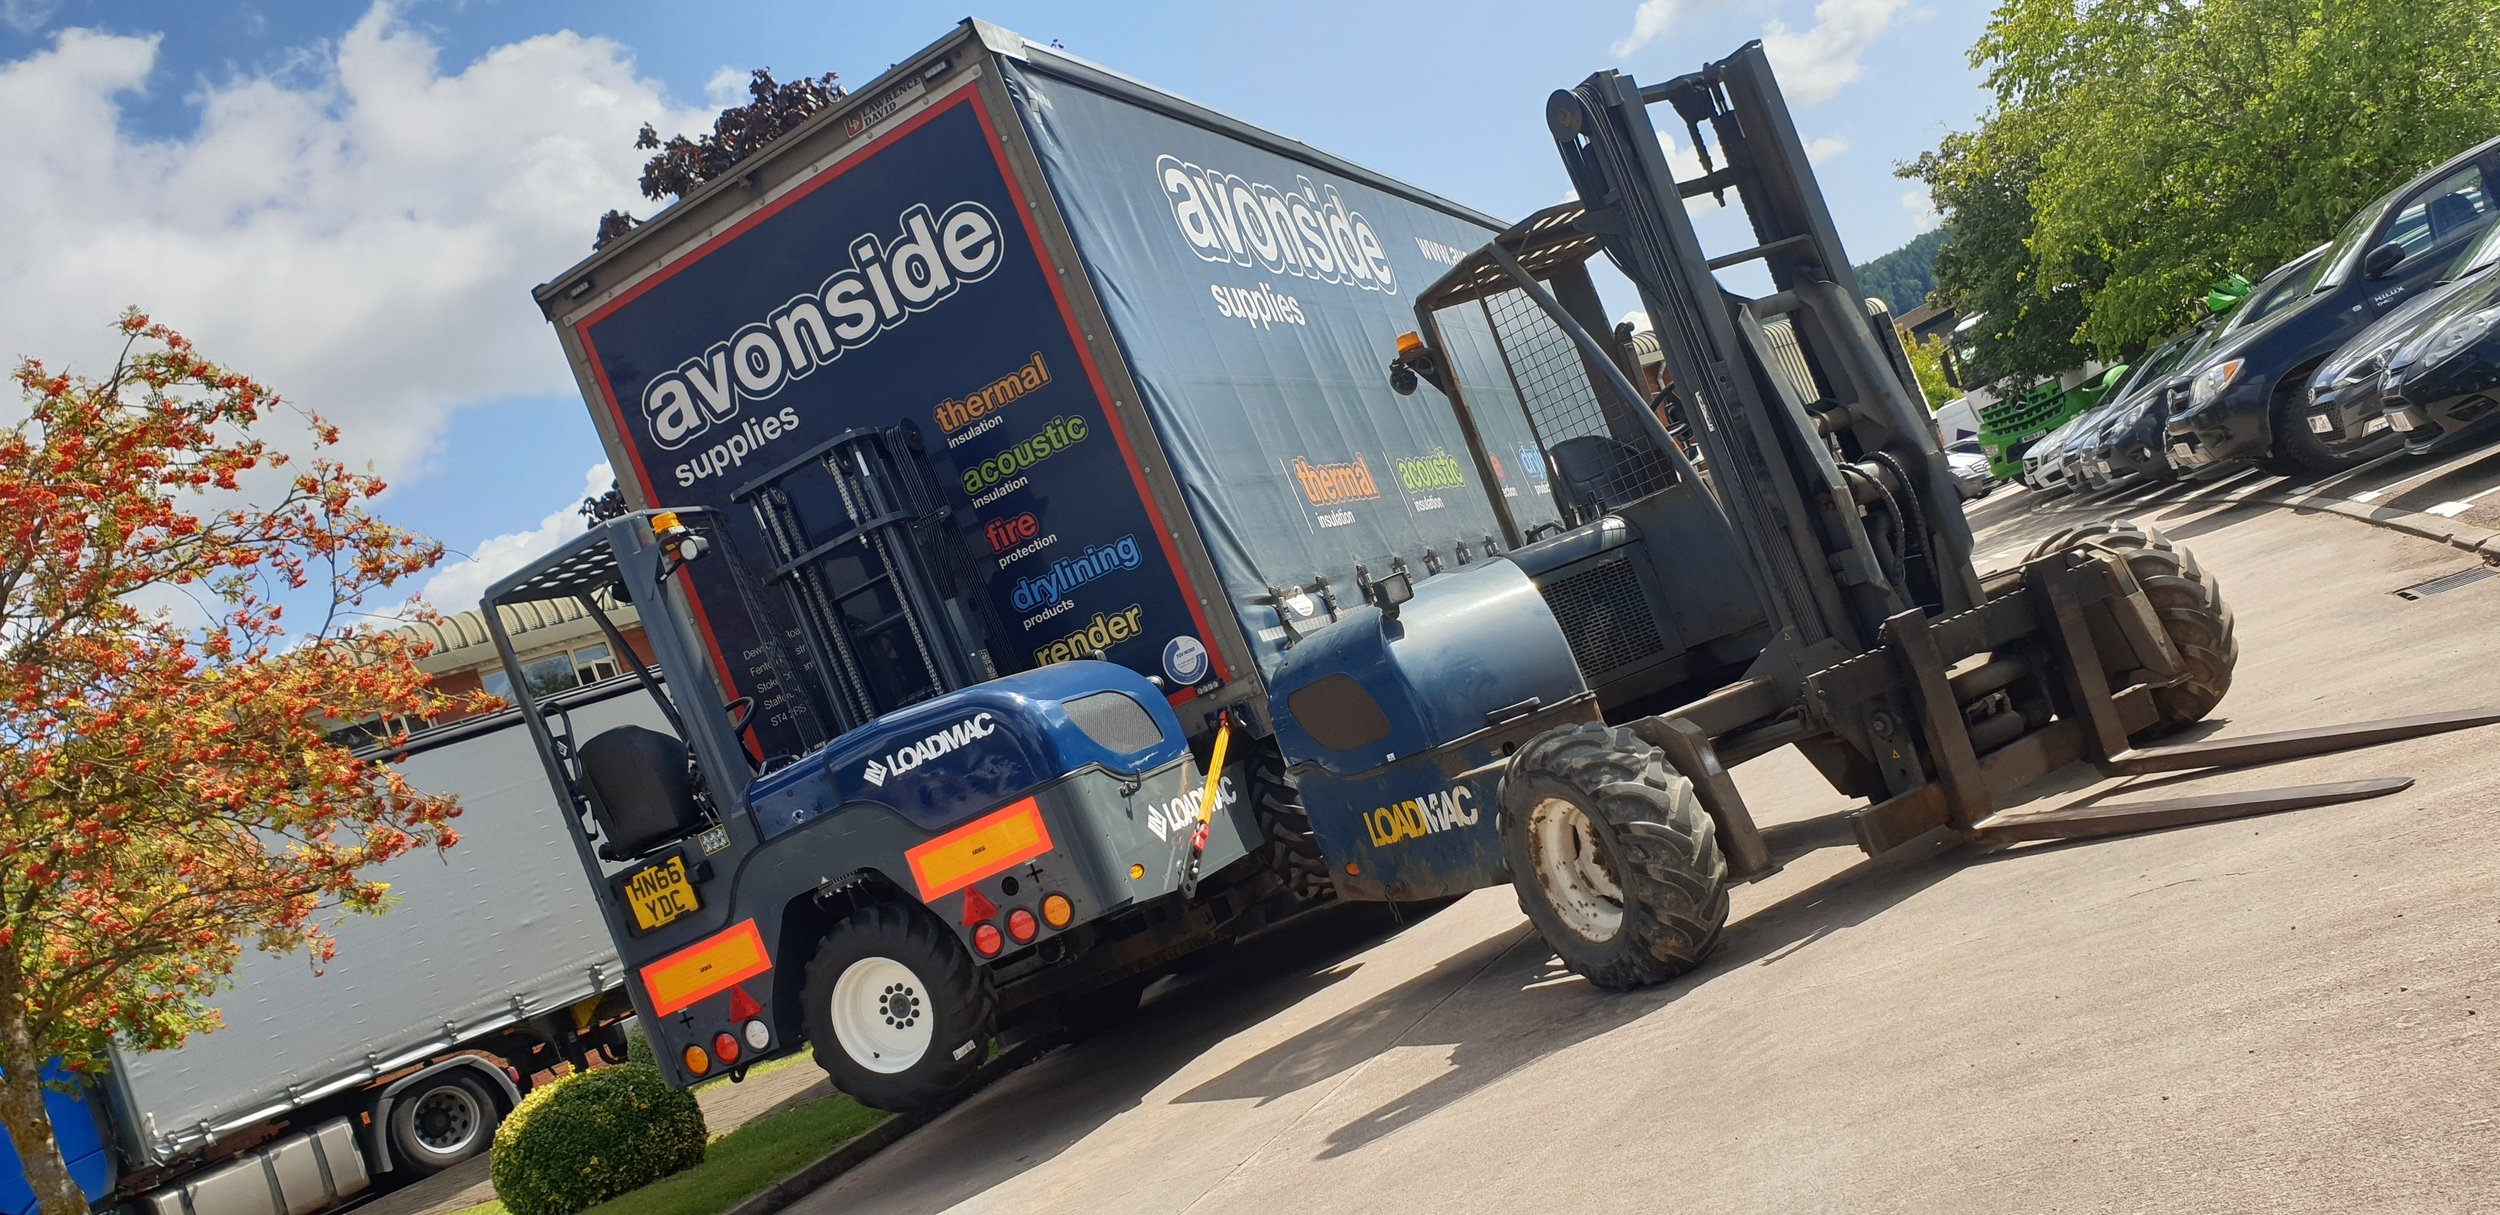 Number 1 (right) and Number 500 (left): Avonside Insulation Supplies take delivery of the 500th Loadmac 825 truck mounted forklift made in Britain.